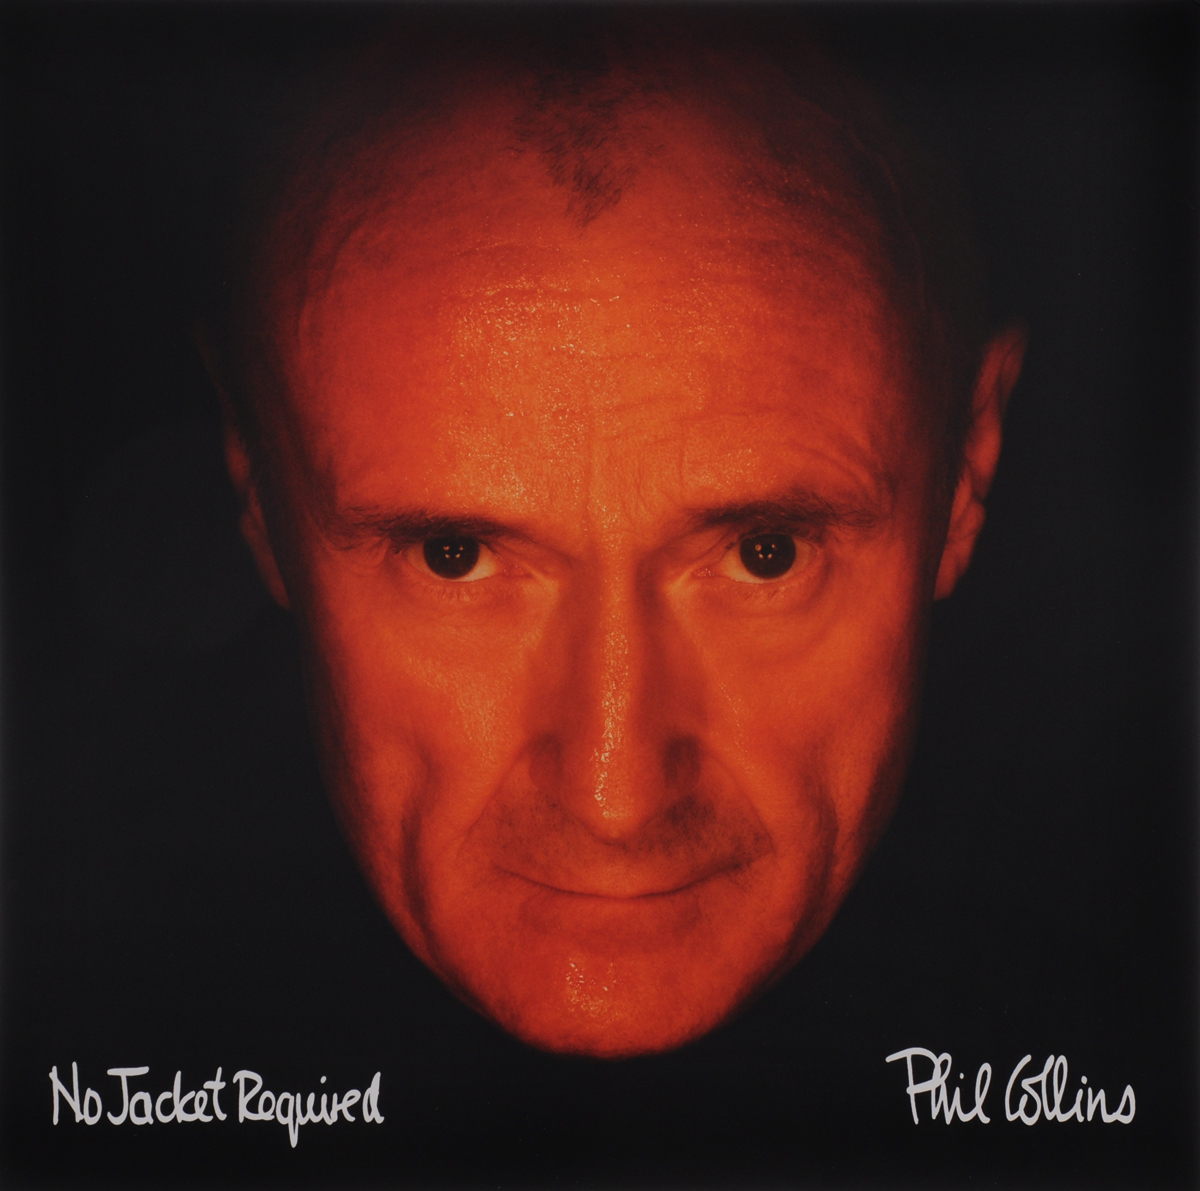 Фил Коллинз Phil Collins. No Jacket Required (LP) виниловая пластинка phil collins hello i must be going remastered